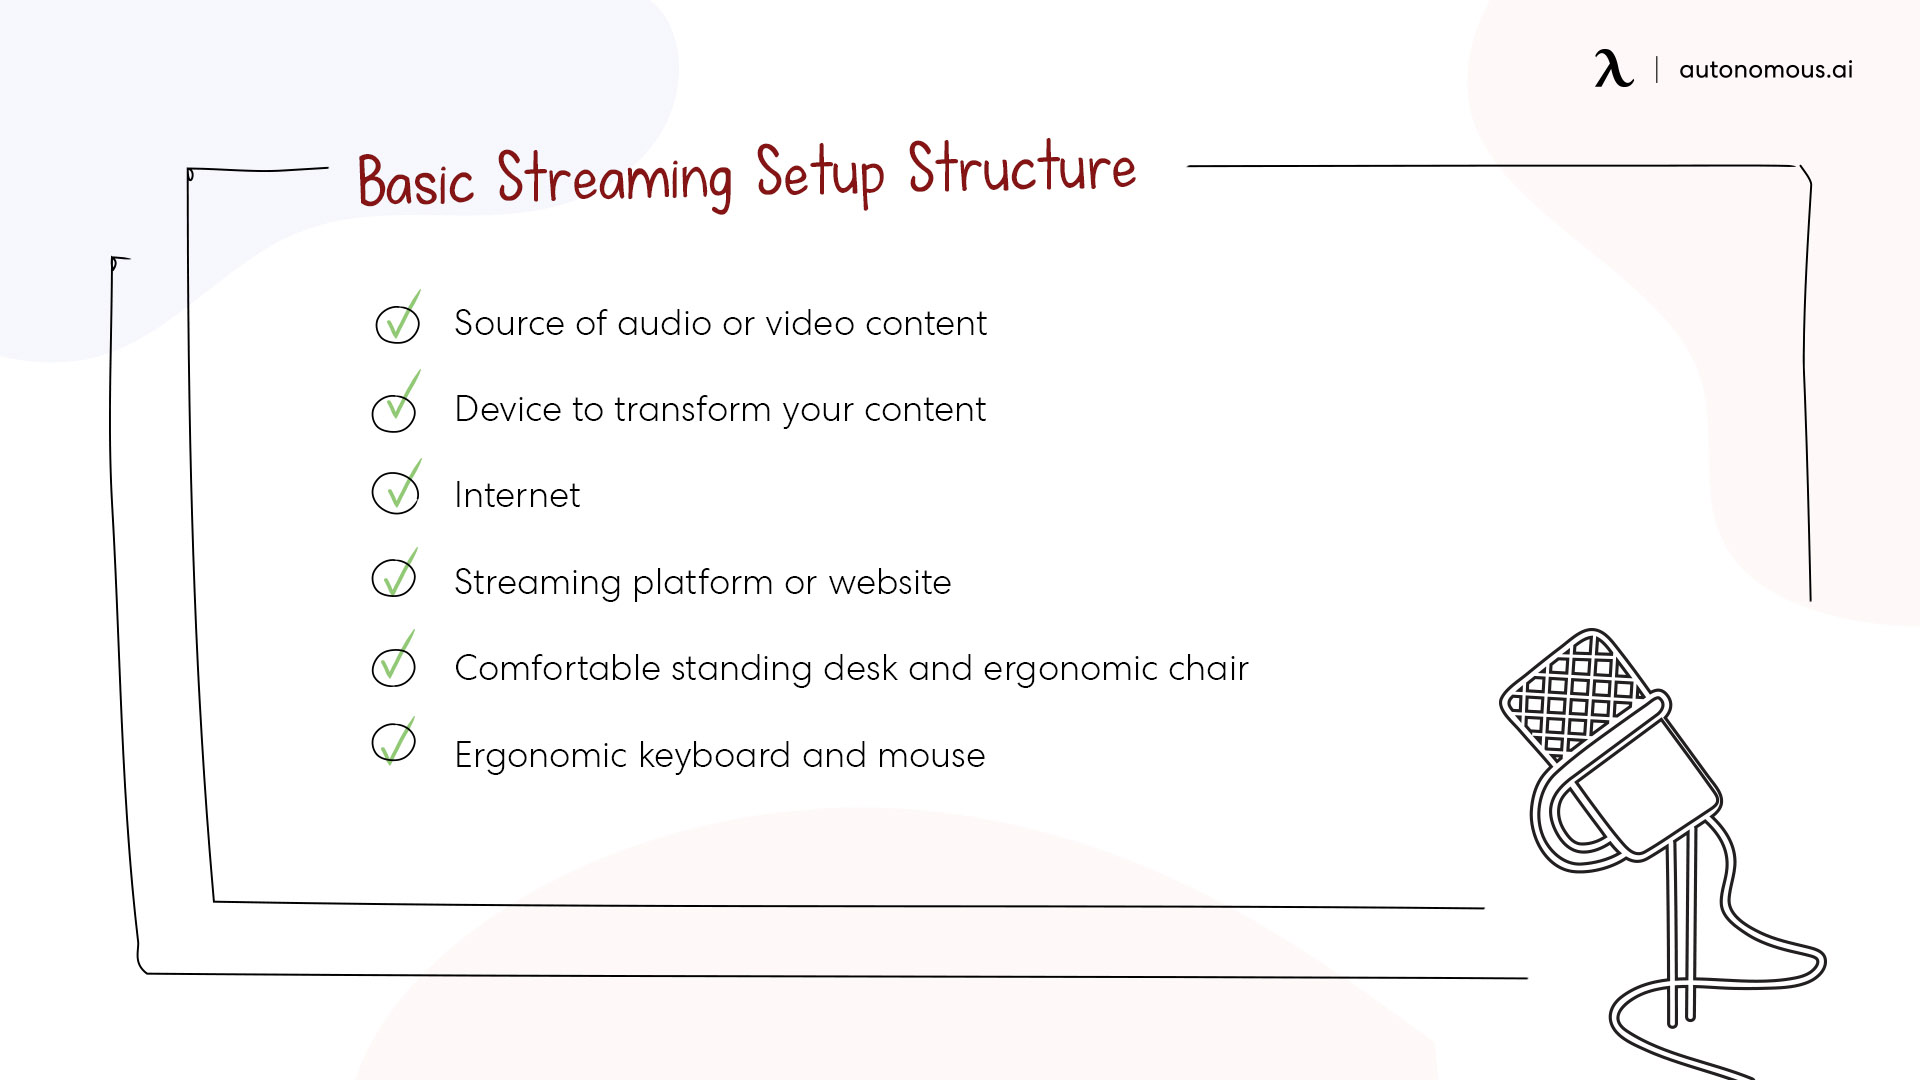 Basic streaming set up structure